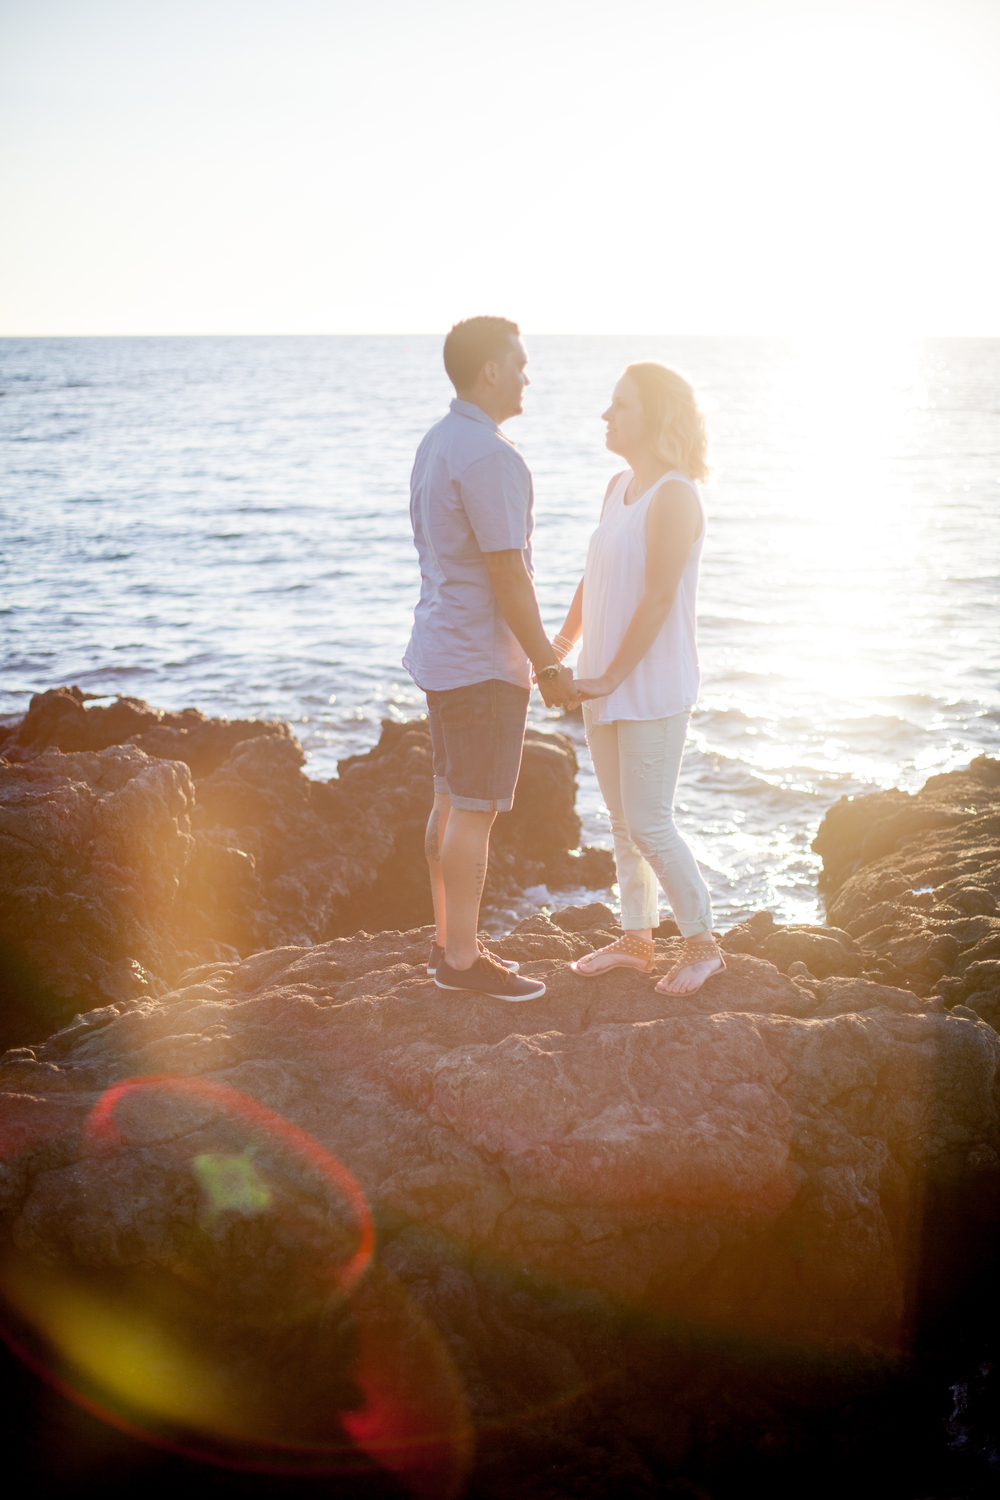 big island hawaii engagement photography 20150529183506-1.jpg